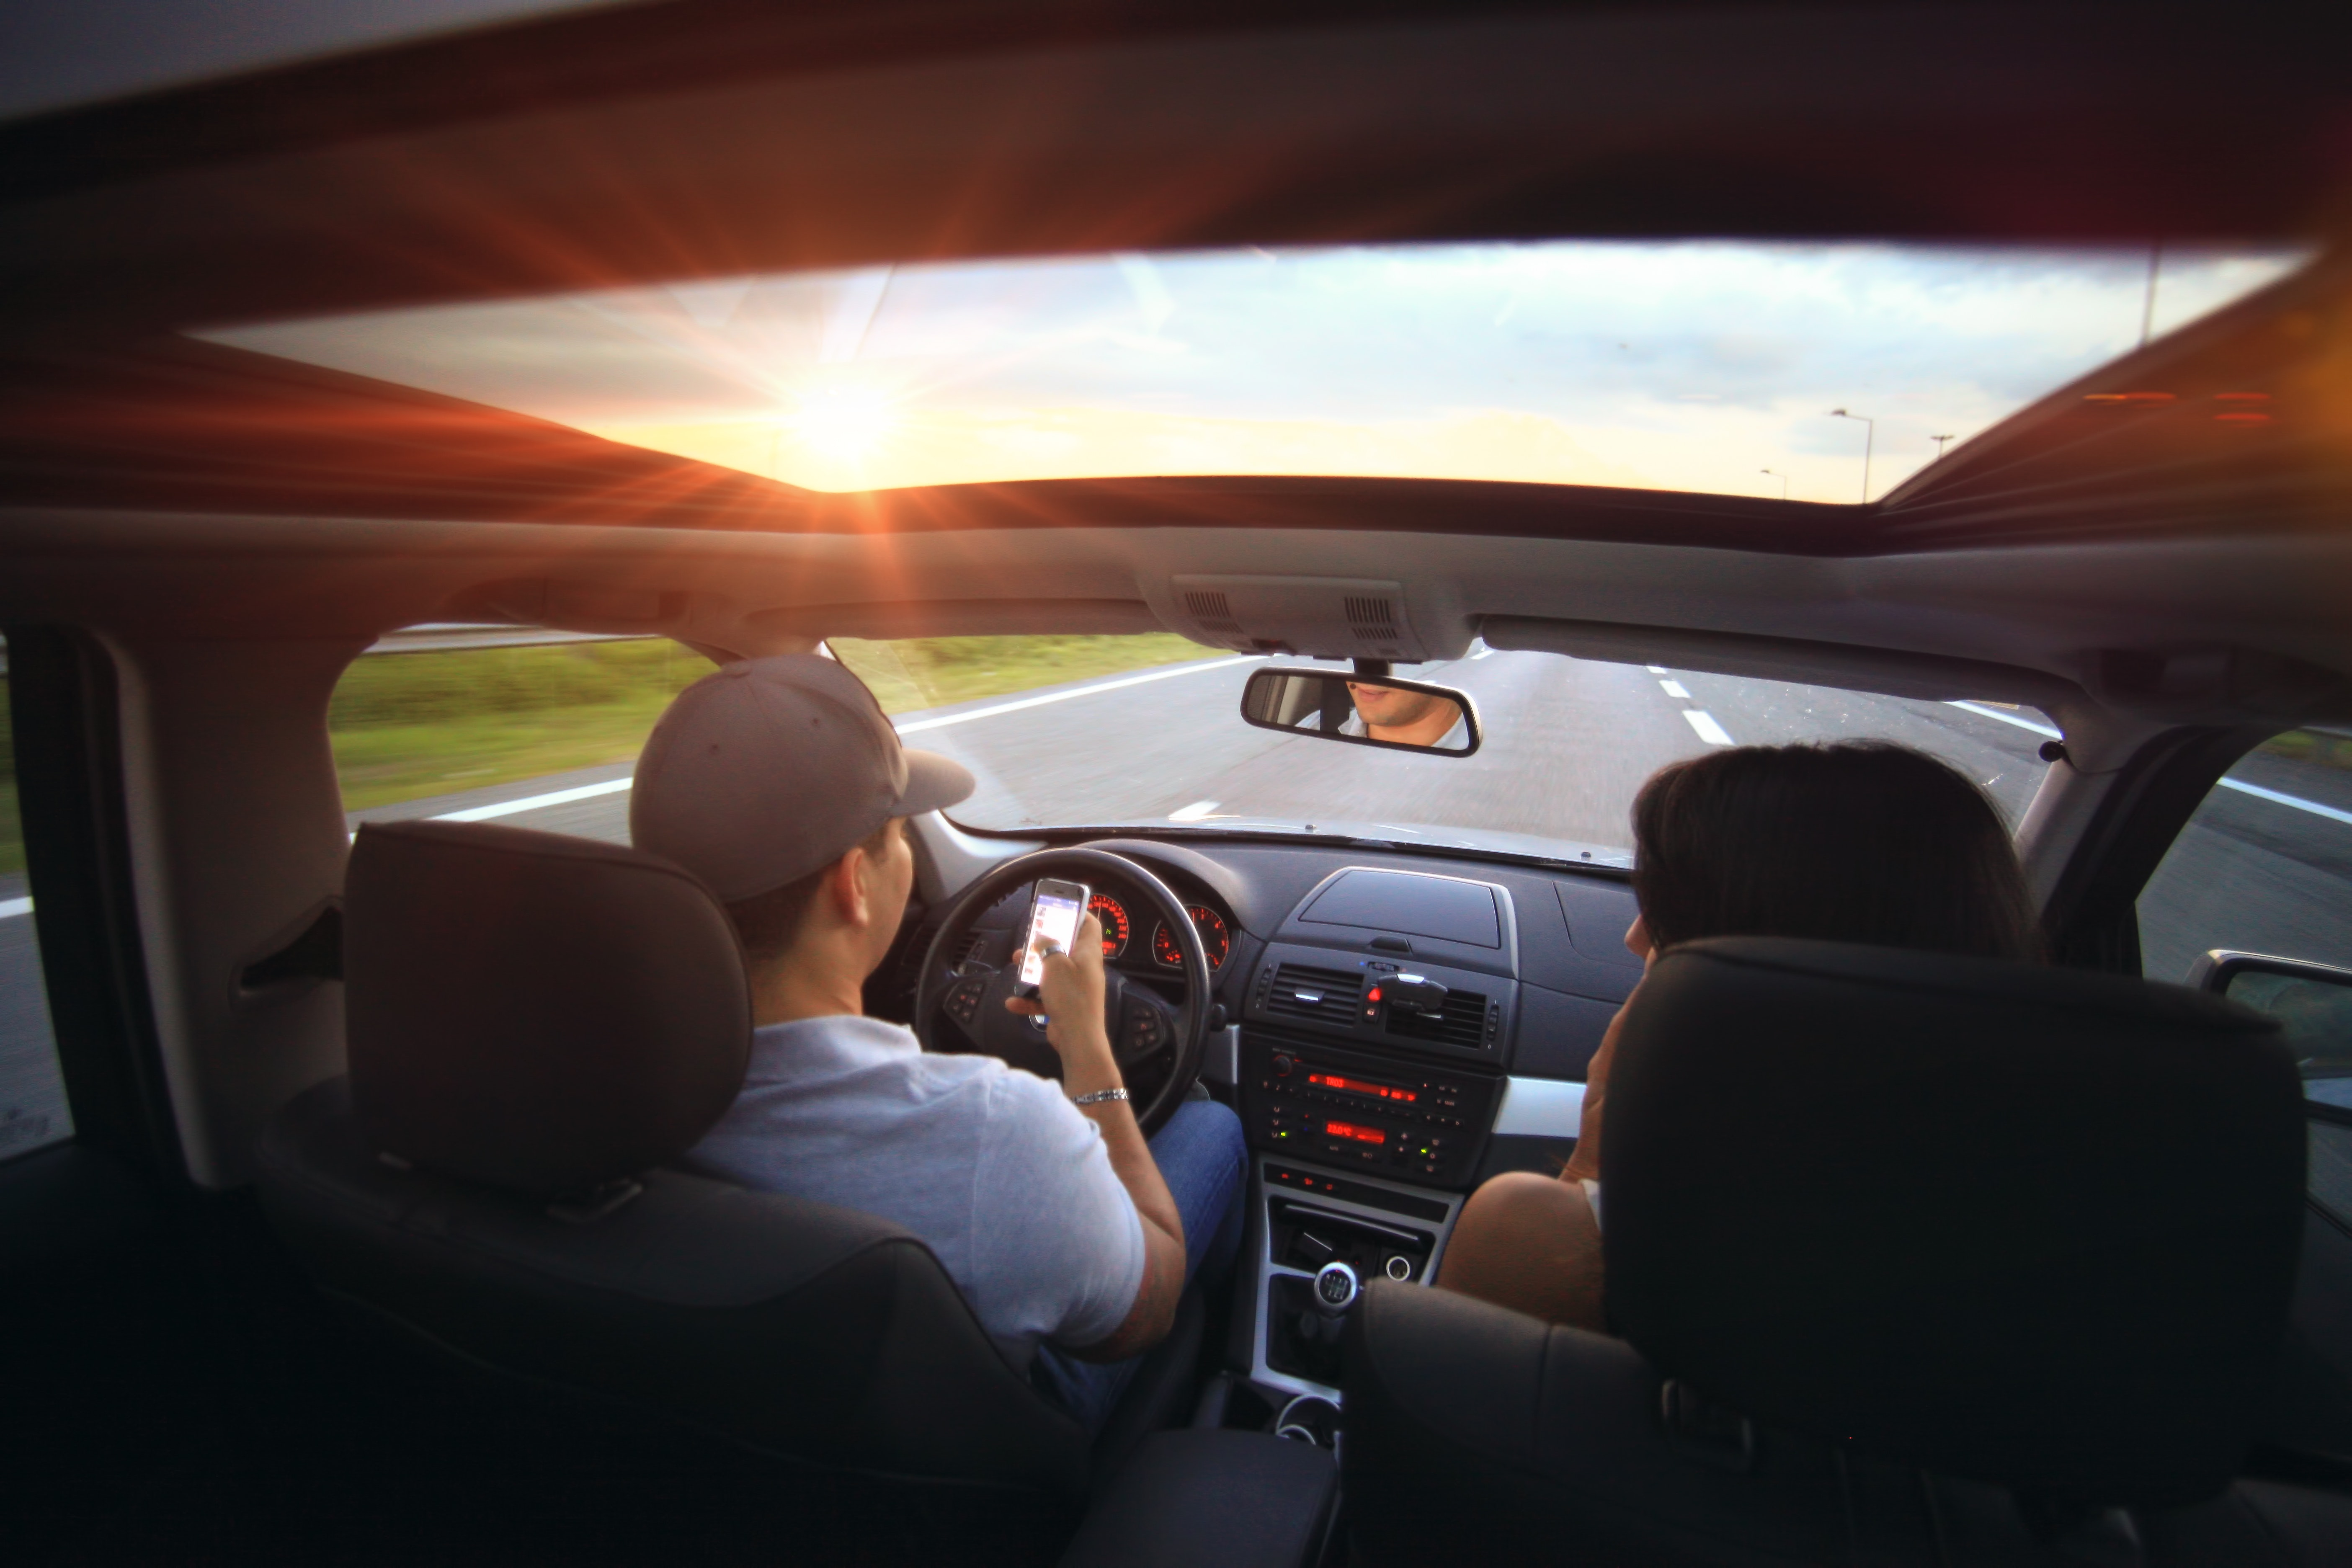 Driving Safety, Distracted Driving, Texting